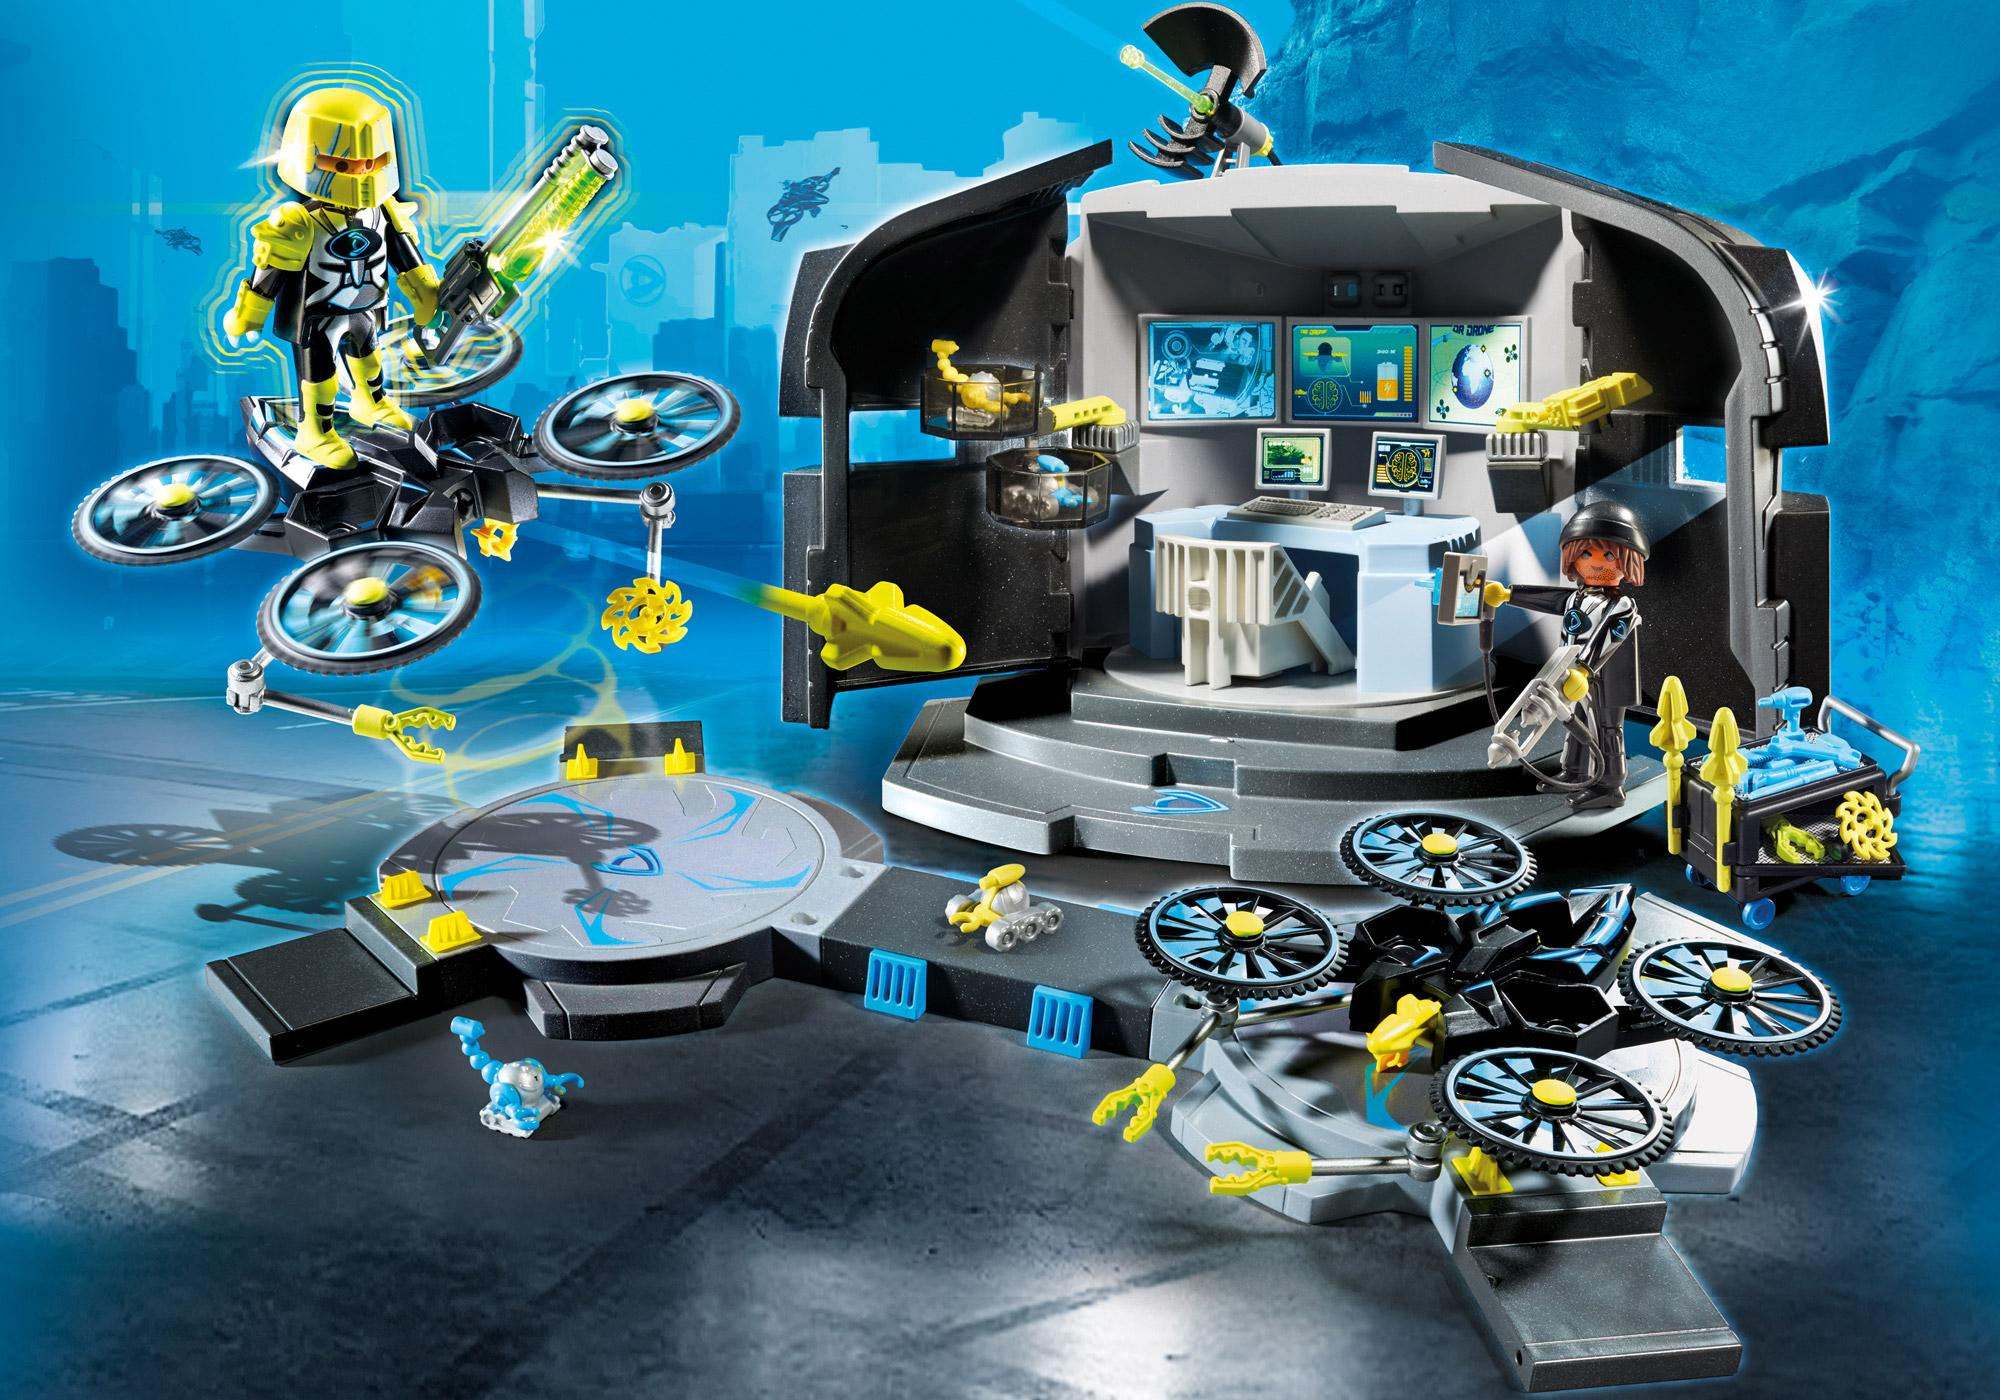 http://media.playmobil.com/i/playmobil/9250_product_detail/Dr. Drone's Command Center